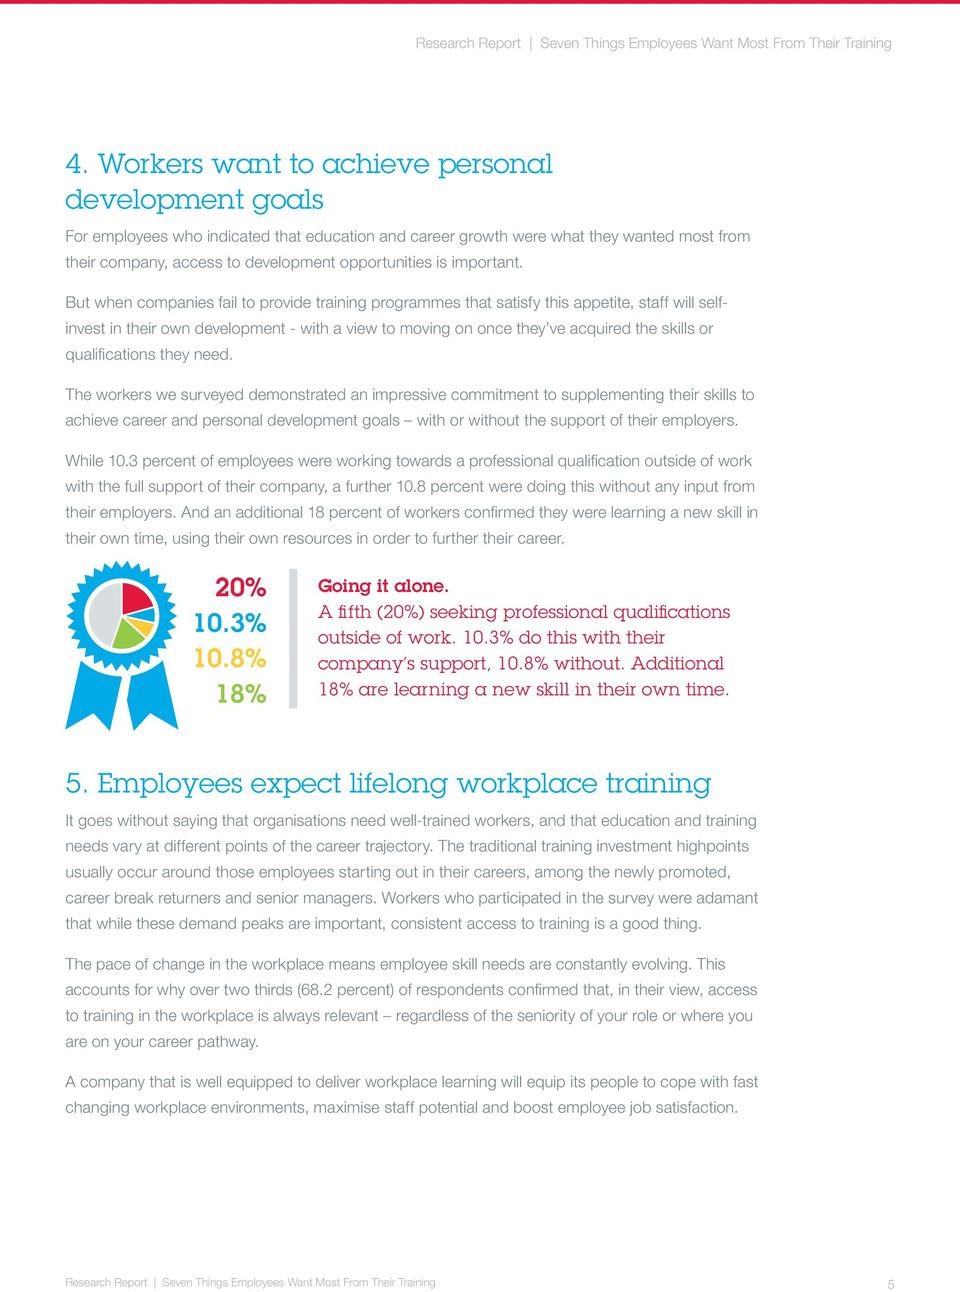 But when companies fail to provide training programmes that satisfy this appetite, staff will selfinvest in their own development - with a view to moving on once they ve acquired the skills or